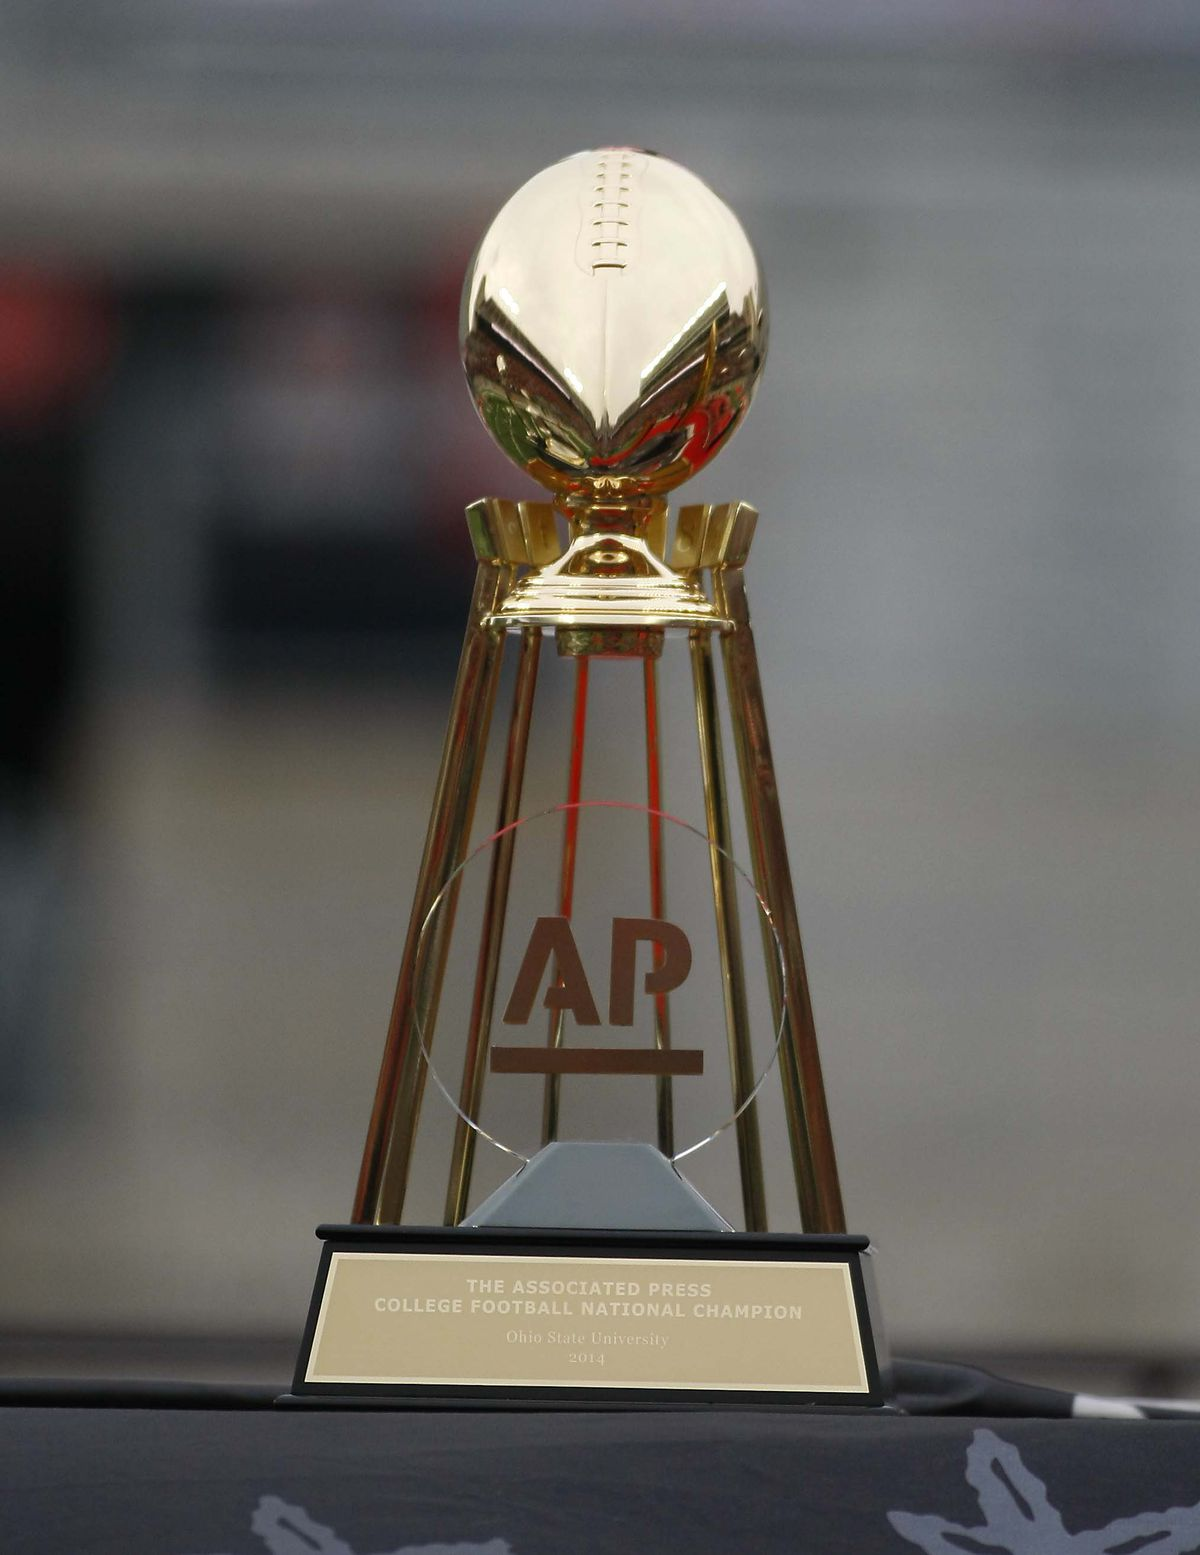 c38db84afec Here are the 4 trophies you get for winning college football s ...